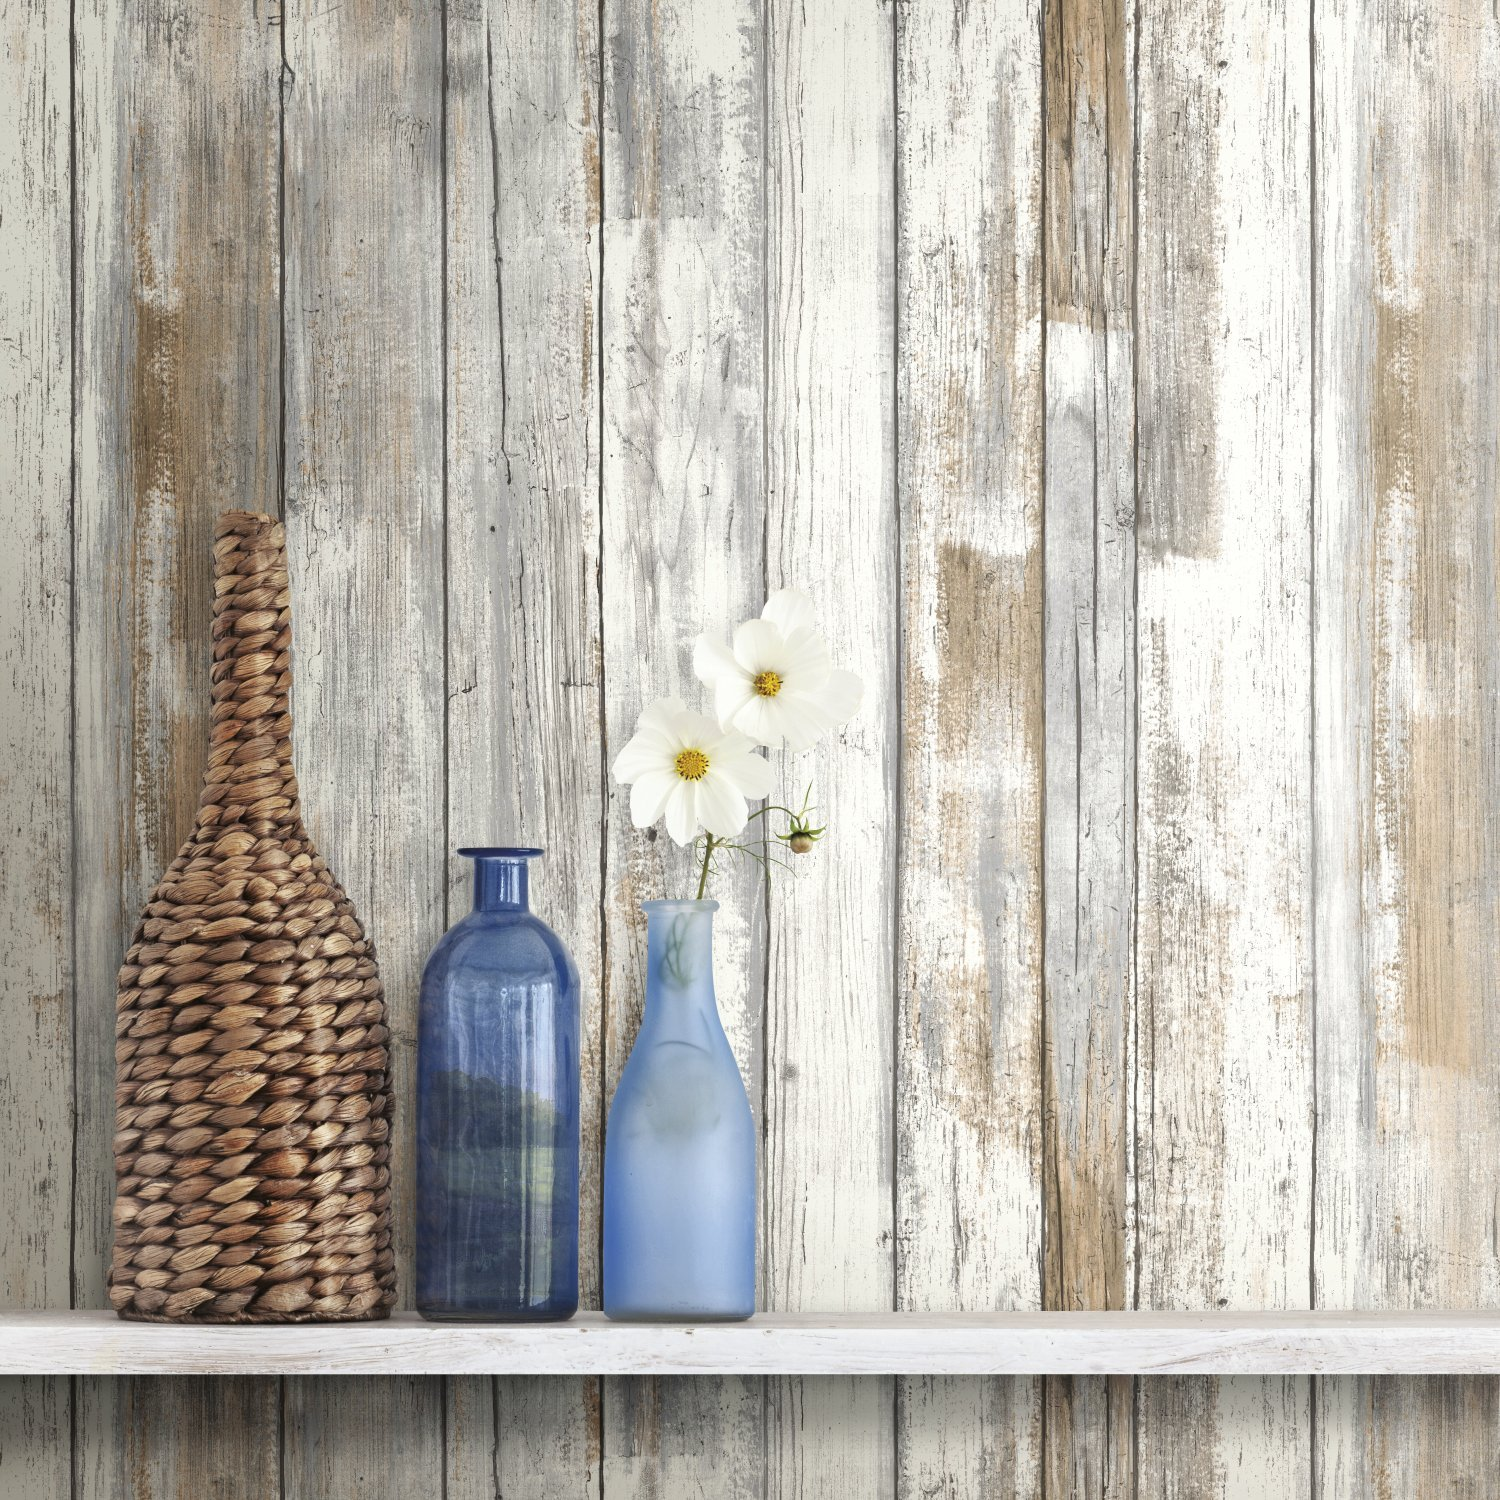 45 Gorgeous Wallpaper Designs For Home Renoguide